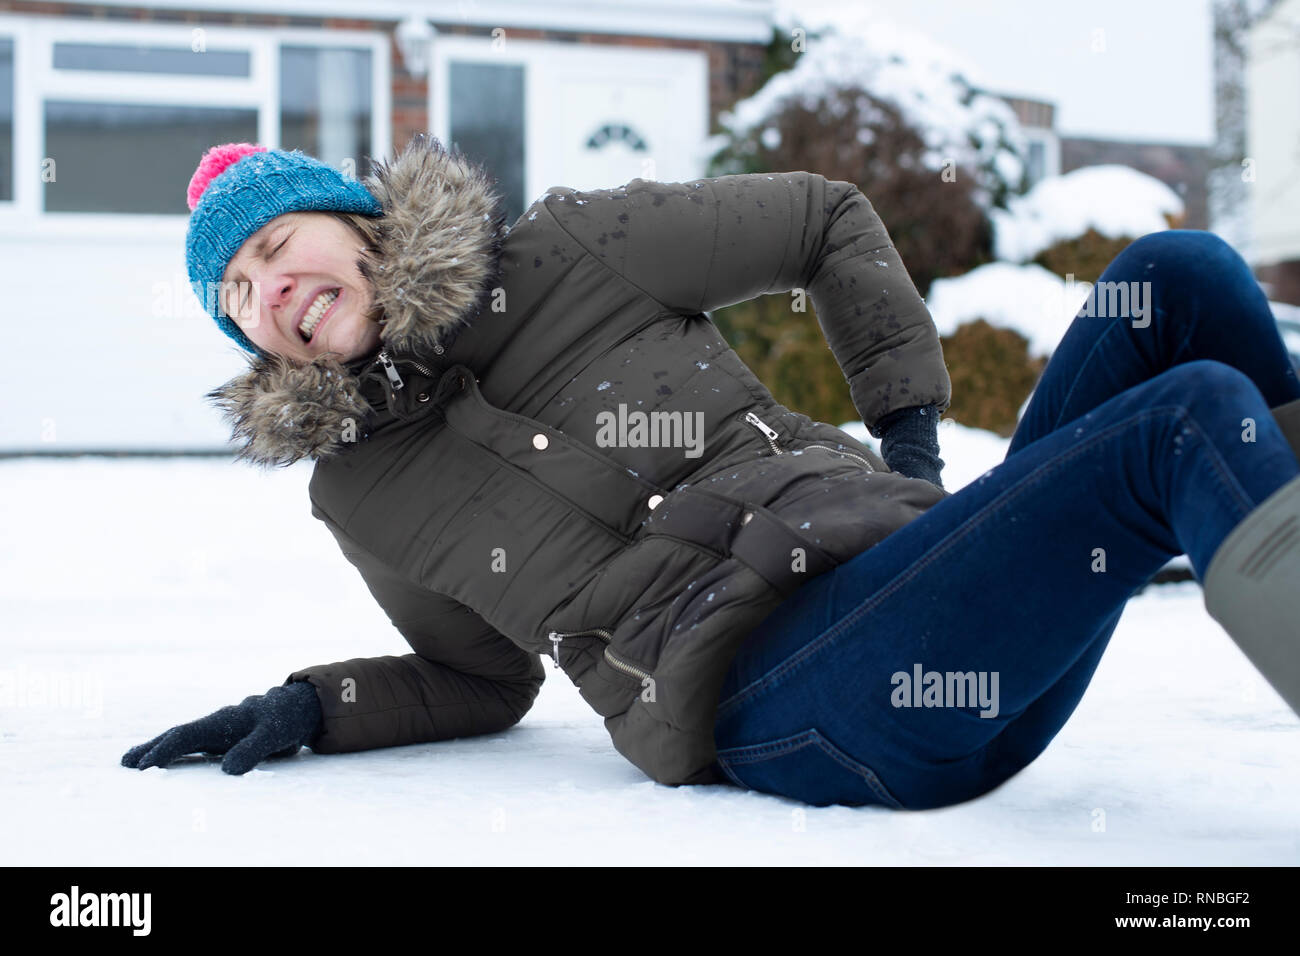 Woman In Pain Falling Over In Snowy On Slippery Street And Injuring Herself - Stock Image